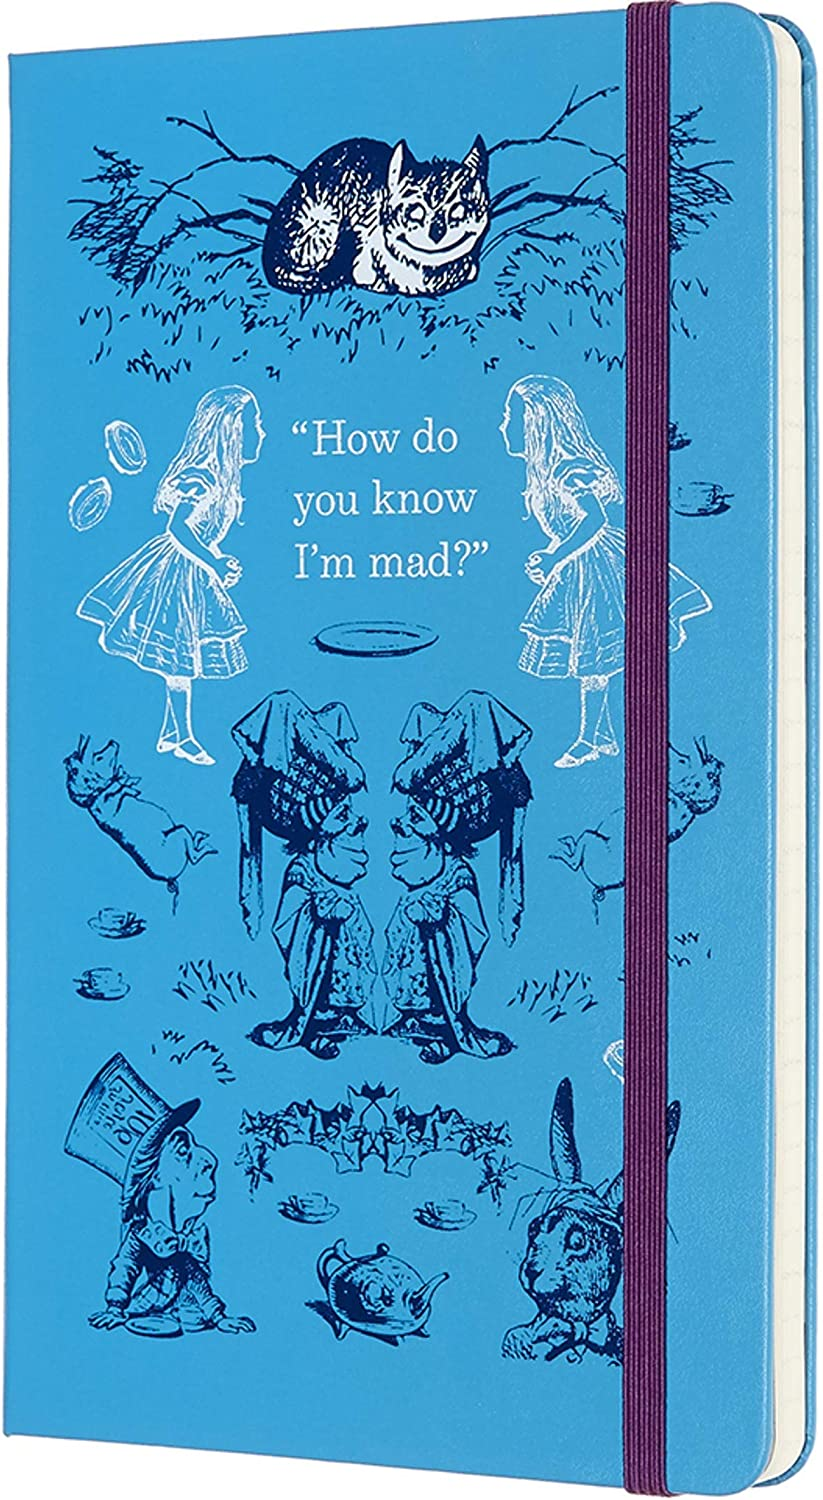 """Moleskine Limited Edition Alice In Wonderland 18 Month 2019-2020 Weekly Planner, Hard Cover, Large (5"""" x 8.25"""") Blue"""